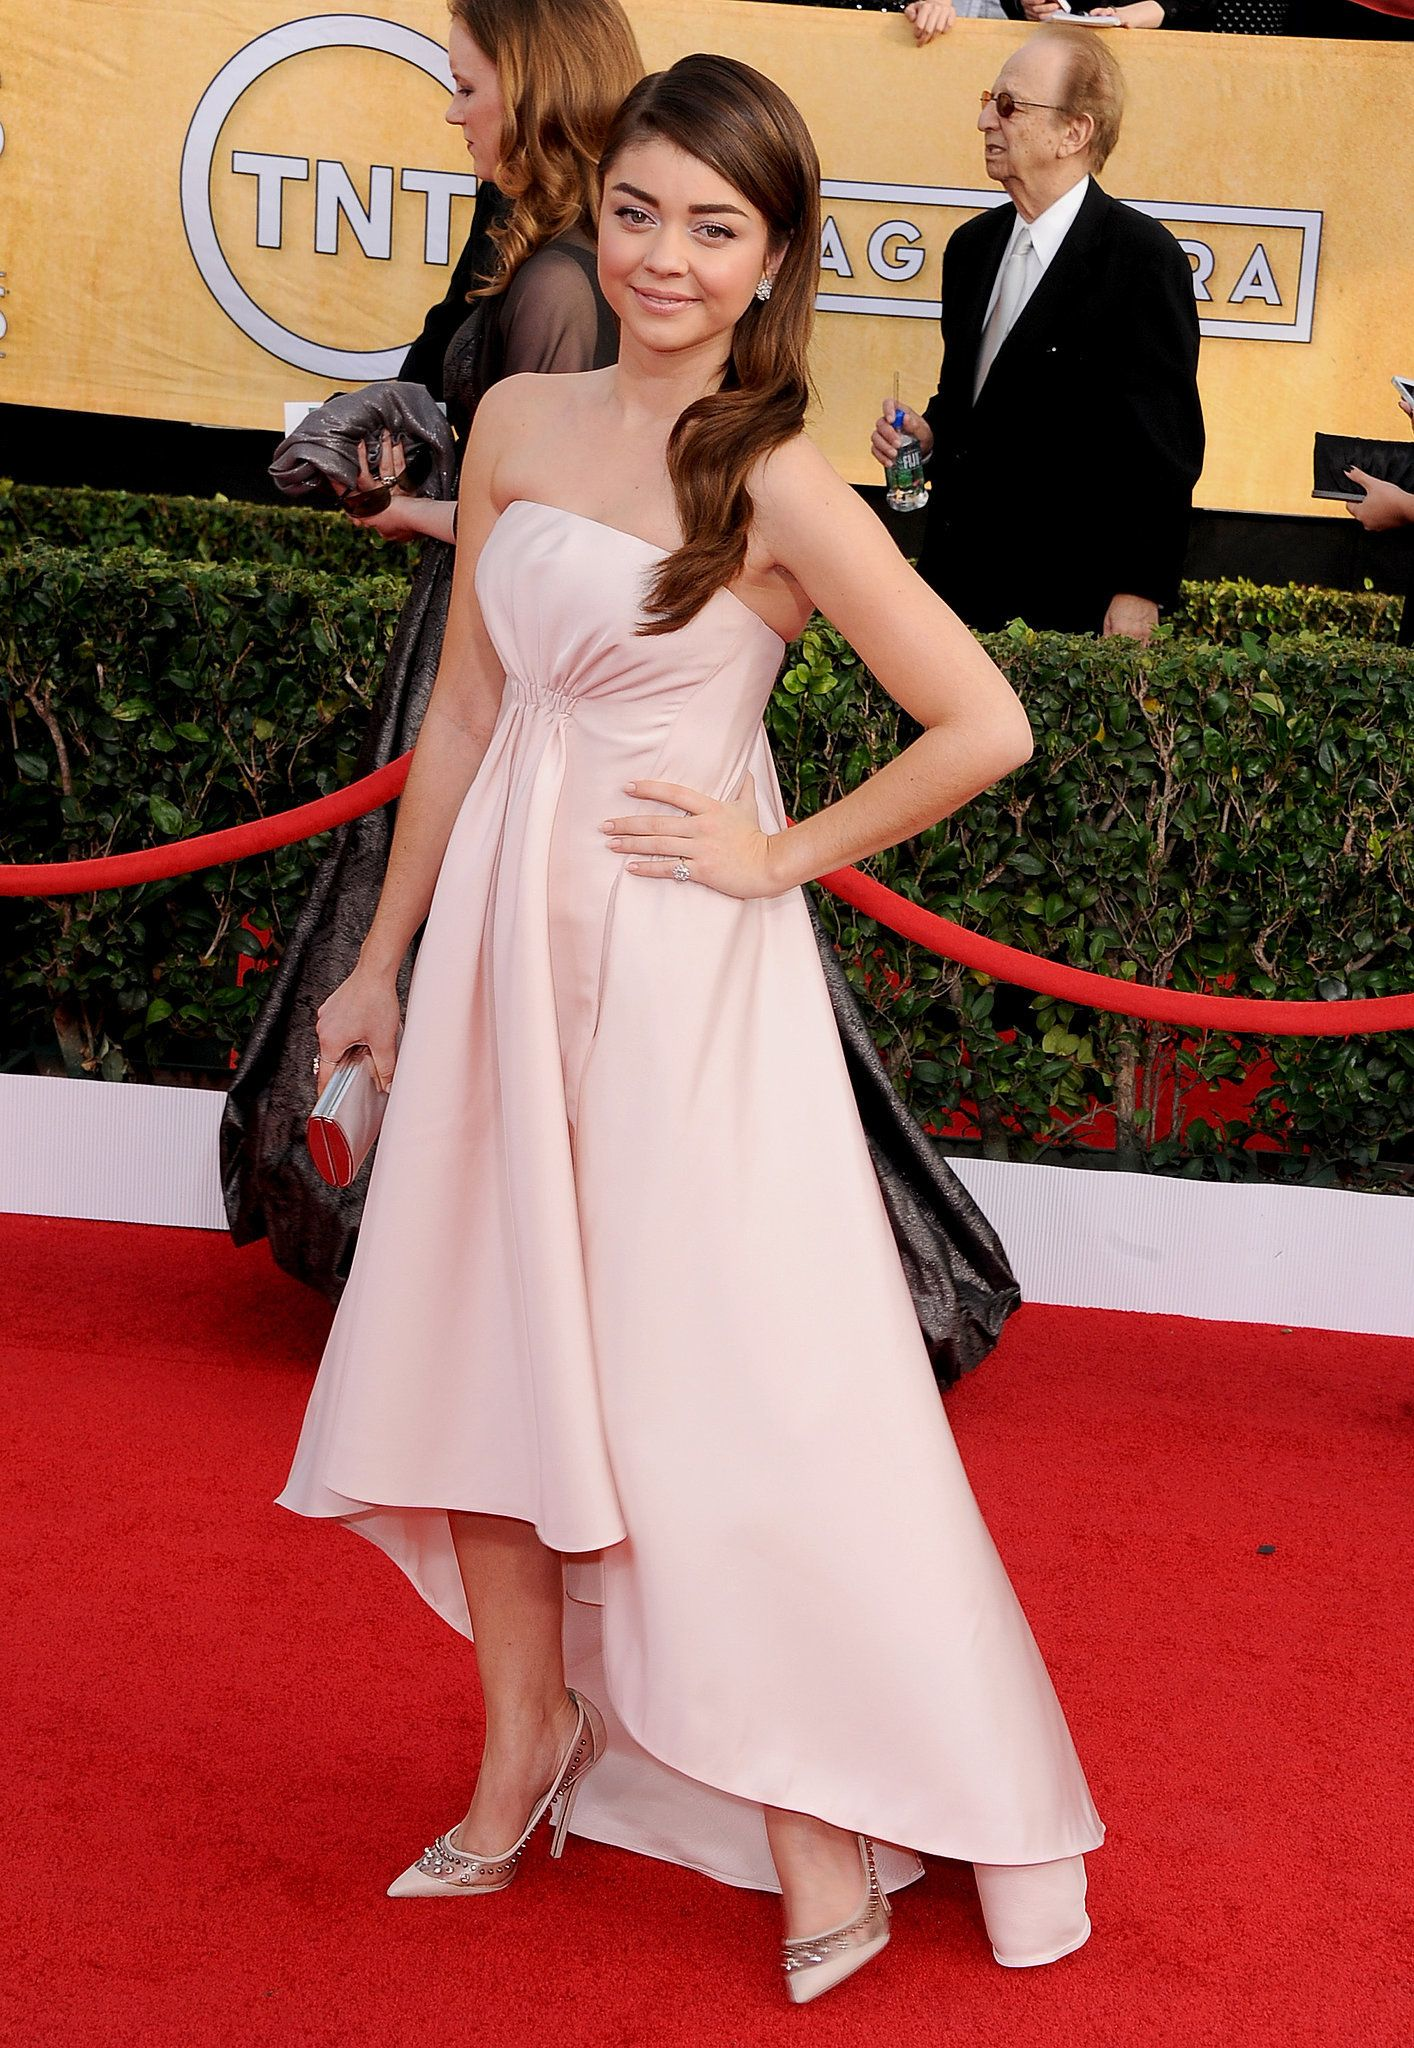 924a18460452 Sarah Hyland at the SAG Awards 2014 Love her dress even cooler that it has  pockets